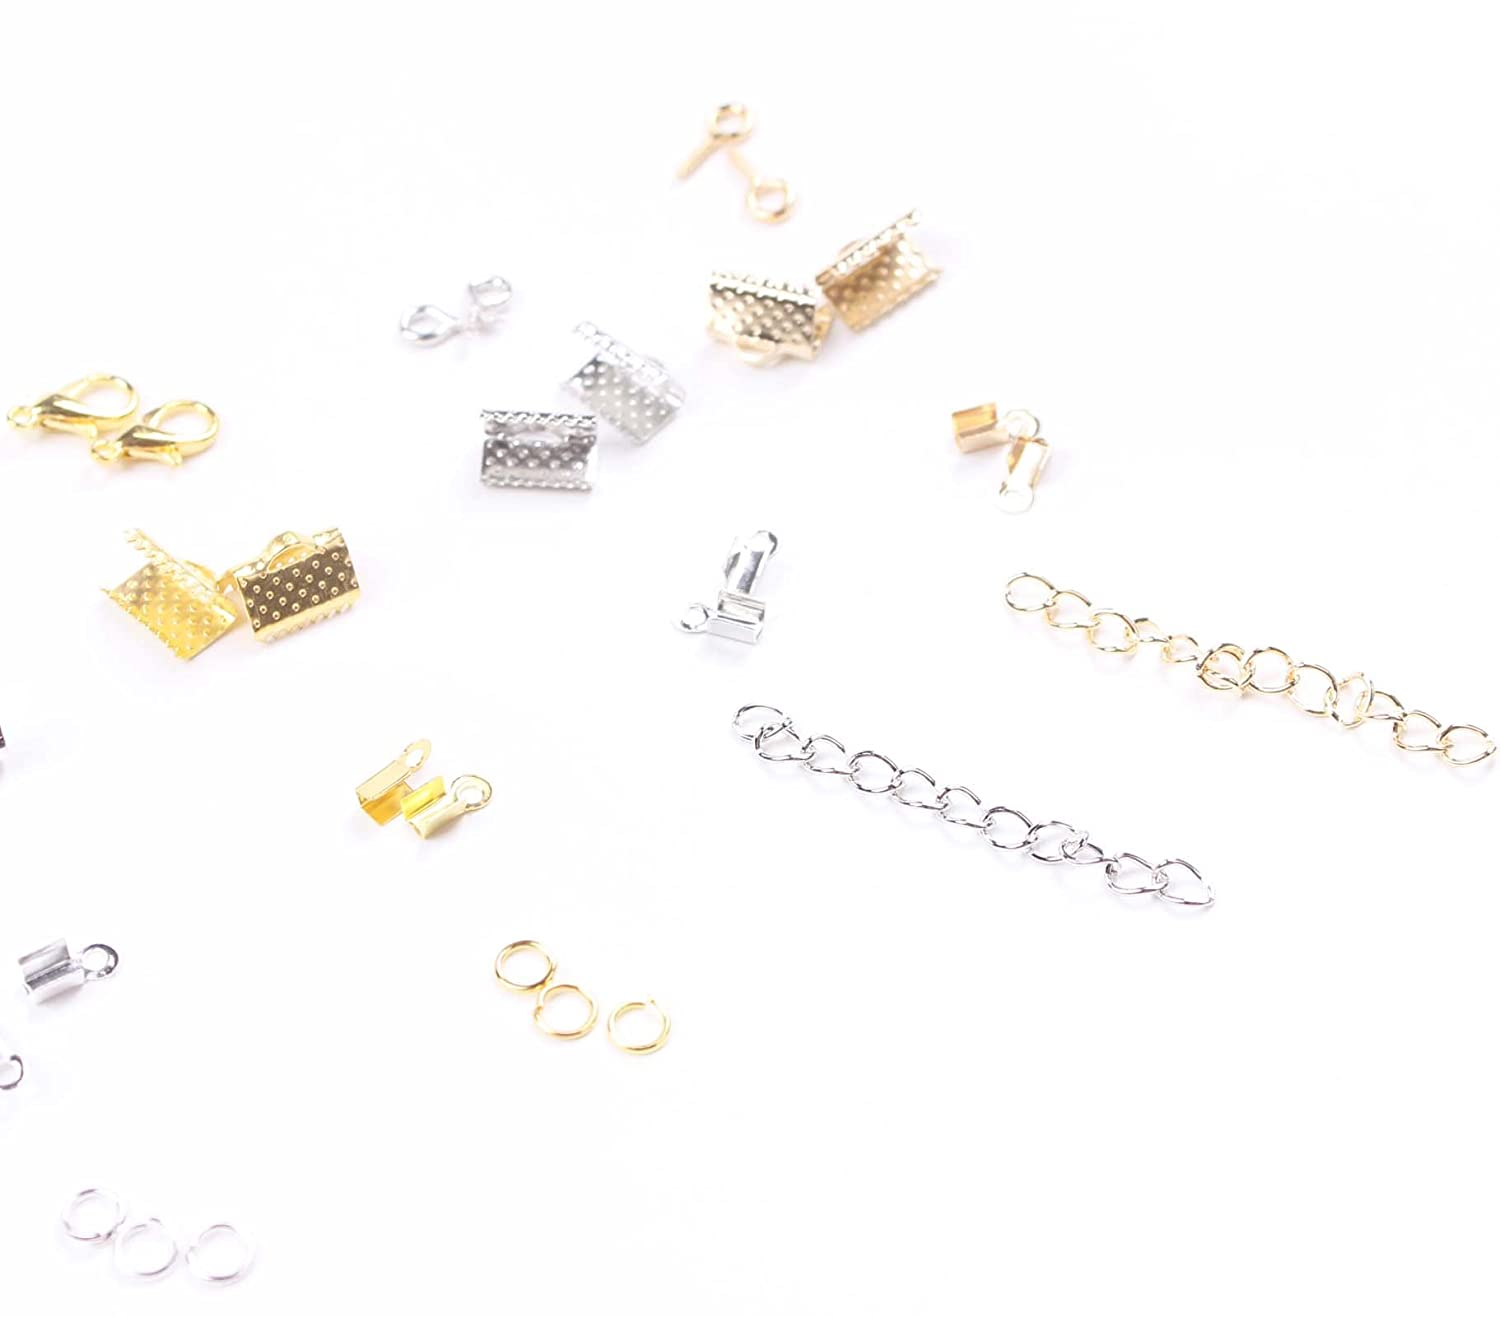 Cord Ends Jump Rings Screw Eyes Pin BIHRTC 24 Style 1860 Pcs Jewelry Making DIY Kit Accessories Lobster Clasps Ribbon Ends Extension Chain with Jump Ring Open Tool in a Clear Box